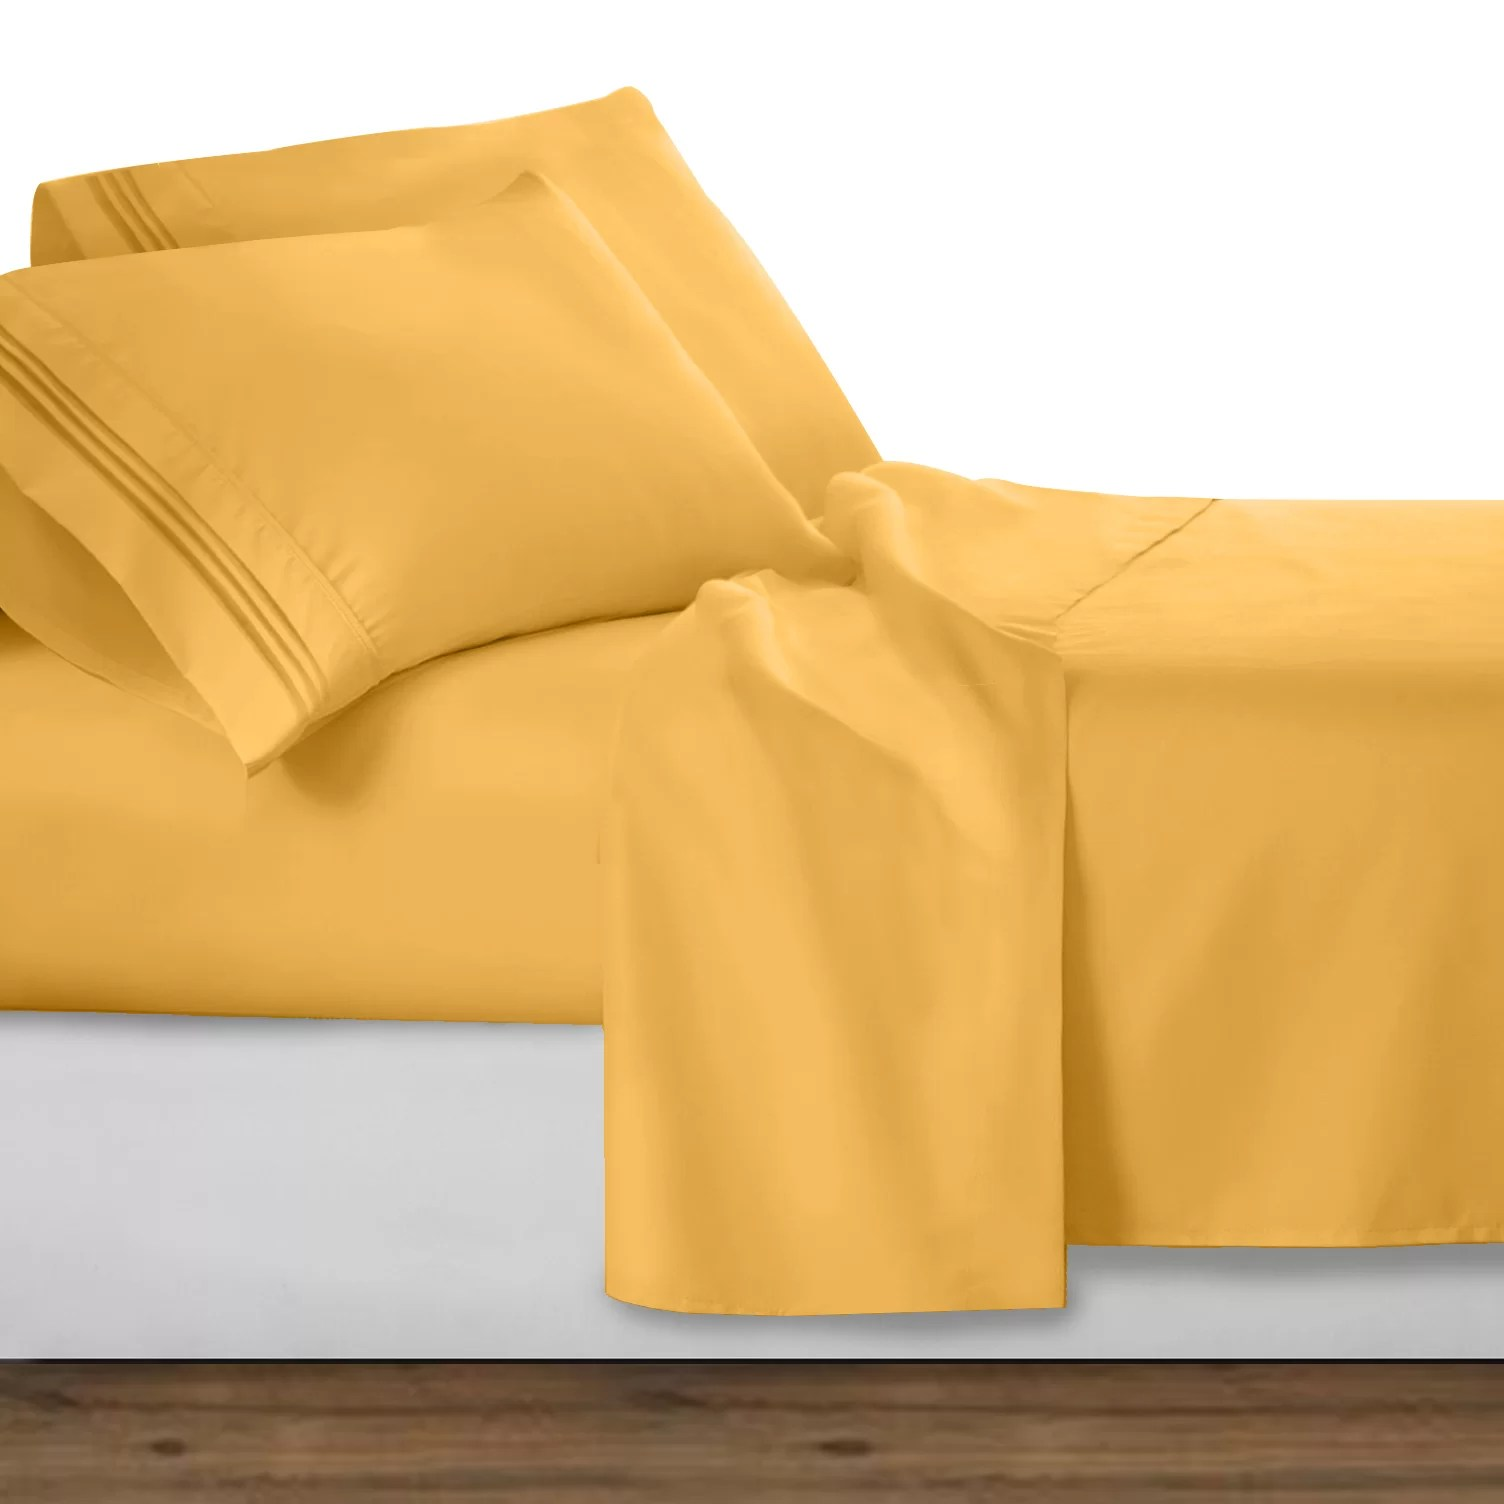 Classy Cons Charlton Home Clara Clark Microfiber Sheet Set Reviews Wayfair What Are Microfiber Sheets Made Out Cons Pros Polyester Microfiber Sheets New House Designs Brushed Microfiber Sheets Pros houzz-03 Microfiber Sheets Pros And Cons